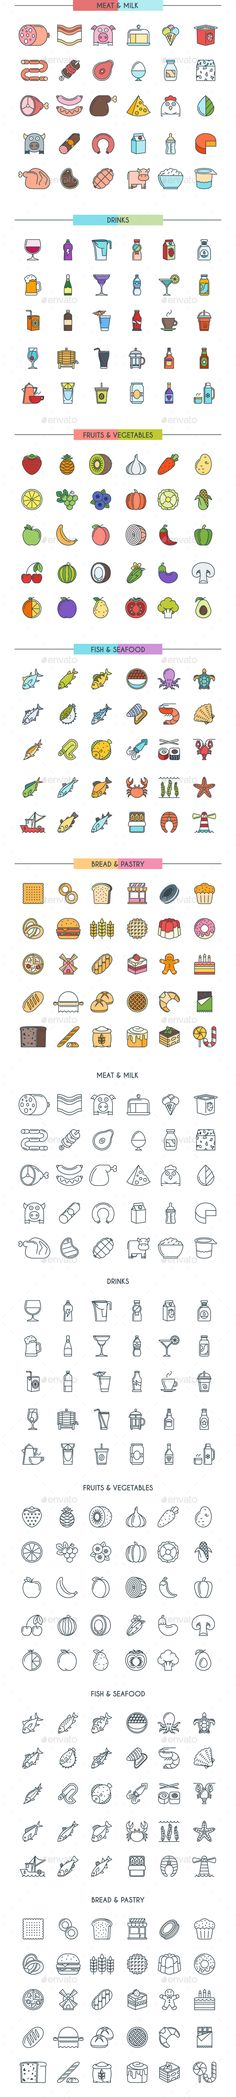 Food and Drinks Icons by Genestro 300 Food and Drinks Icons, Color and Black Versions. Perfectly to your website, logos, advertisement, promotion material, sticker